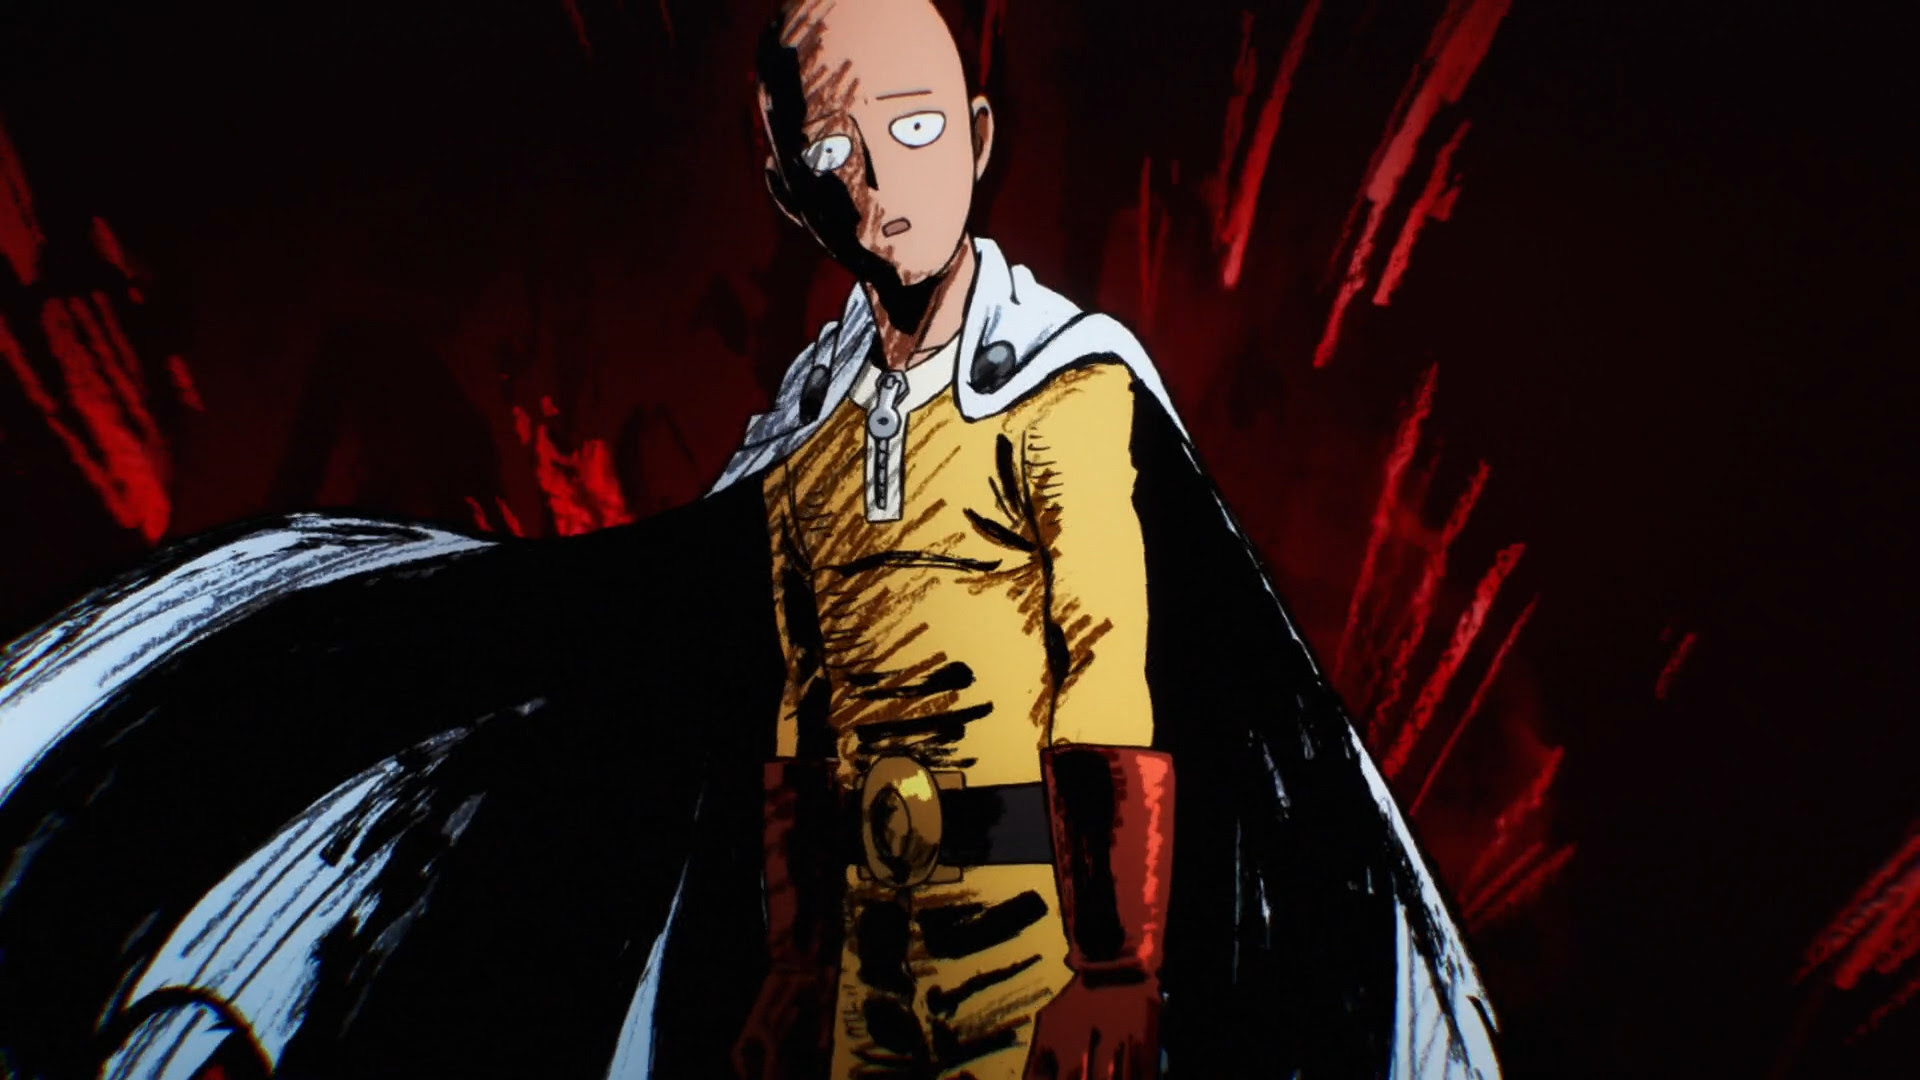 Cool Anime Wallpapers One Punch Man Anime Wallpapers